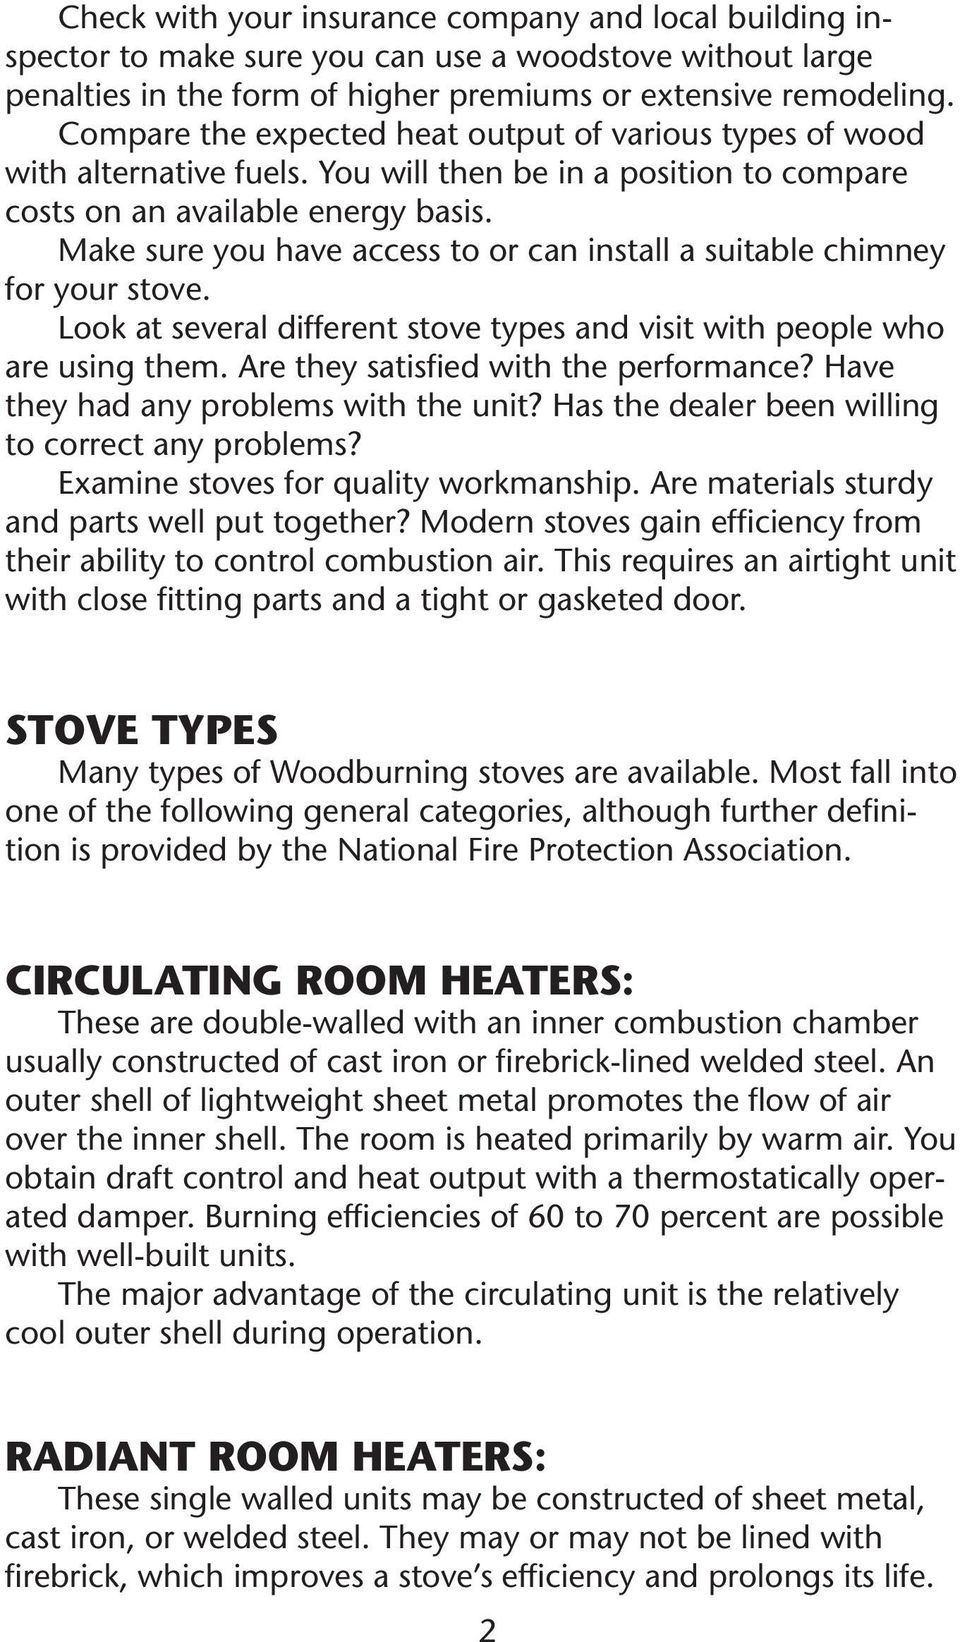 Make sure you have access to or can install a suitable chimney for your stove. Look at several different stove types and visit with people who are using them. Are they satisfied with the performance?